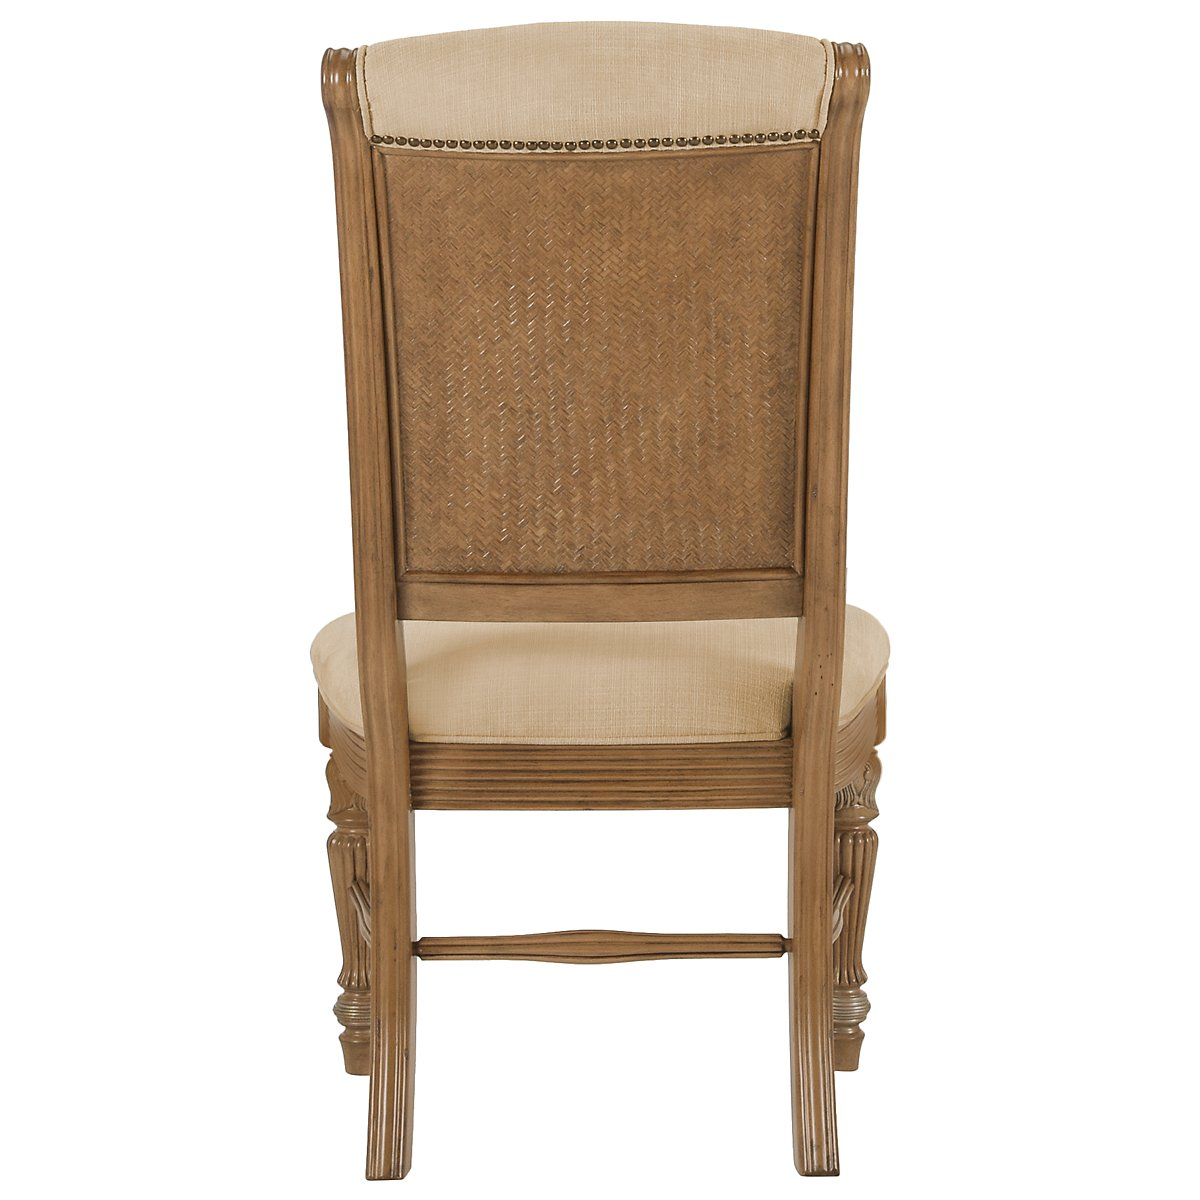 City Furniture Tradewinds Light Tone Round Table 4 Upholstered Chairs